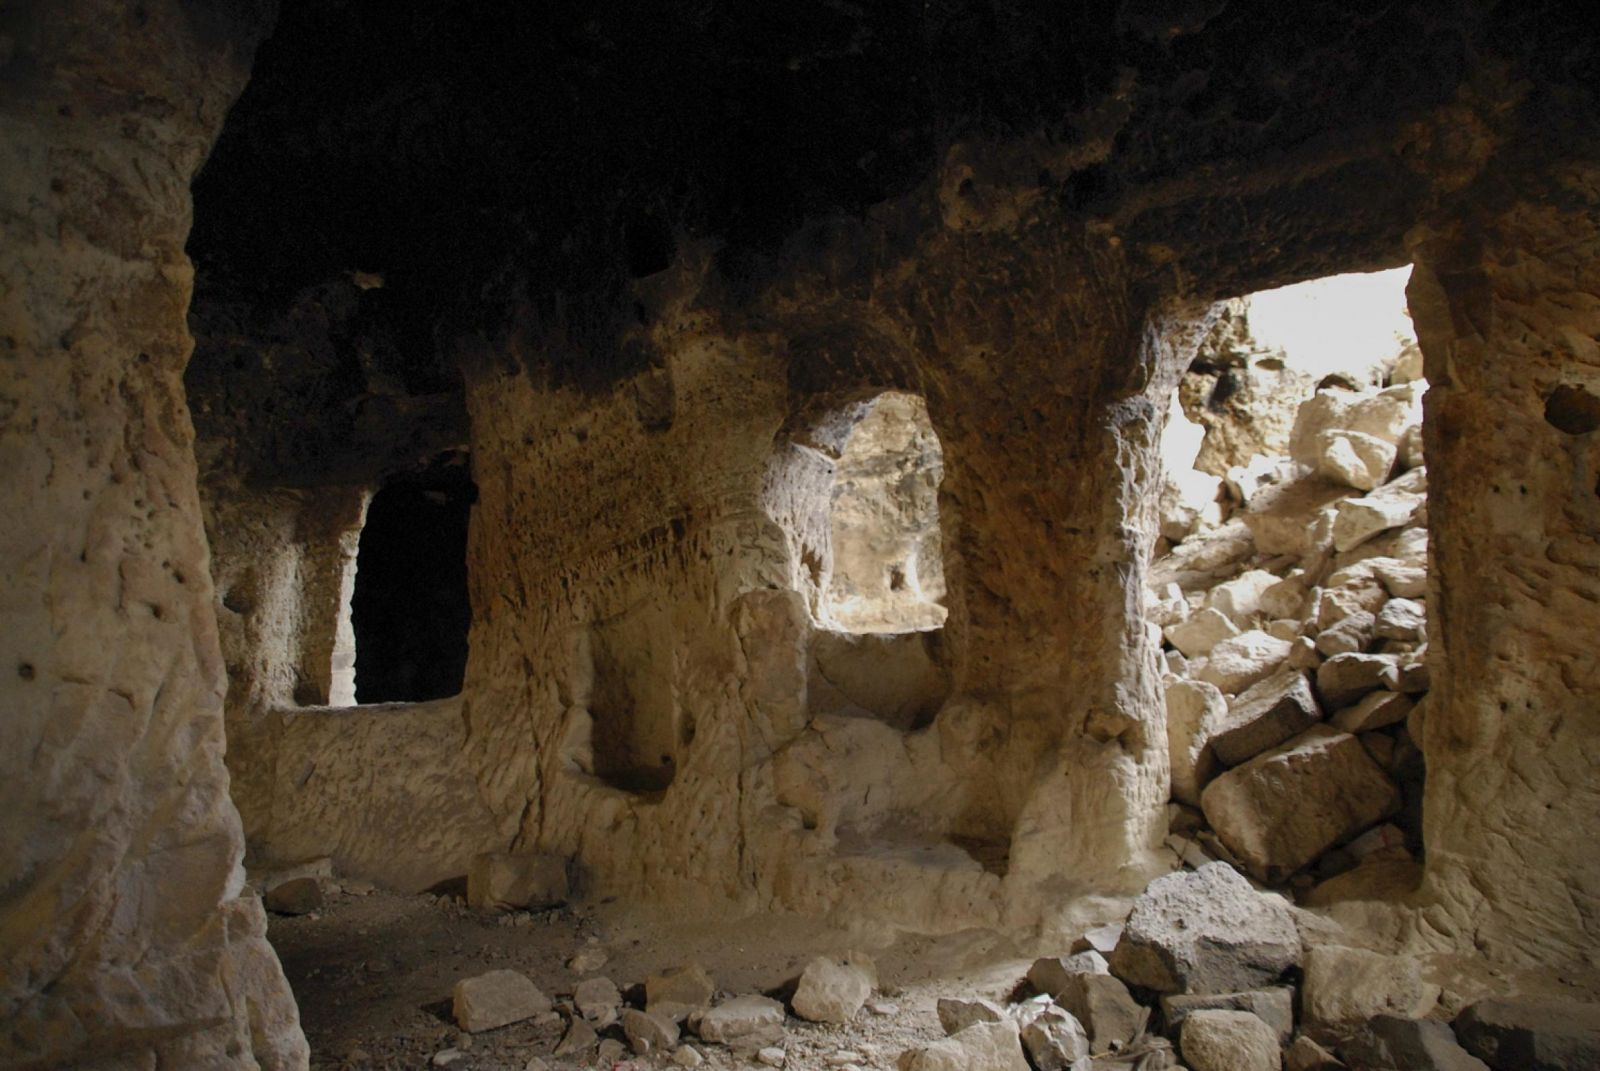 Picture of the underground city in Nevsehir Turkey